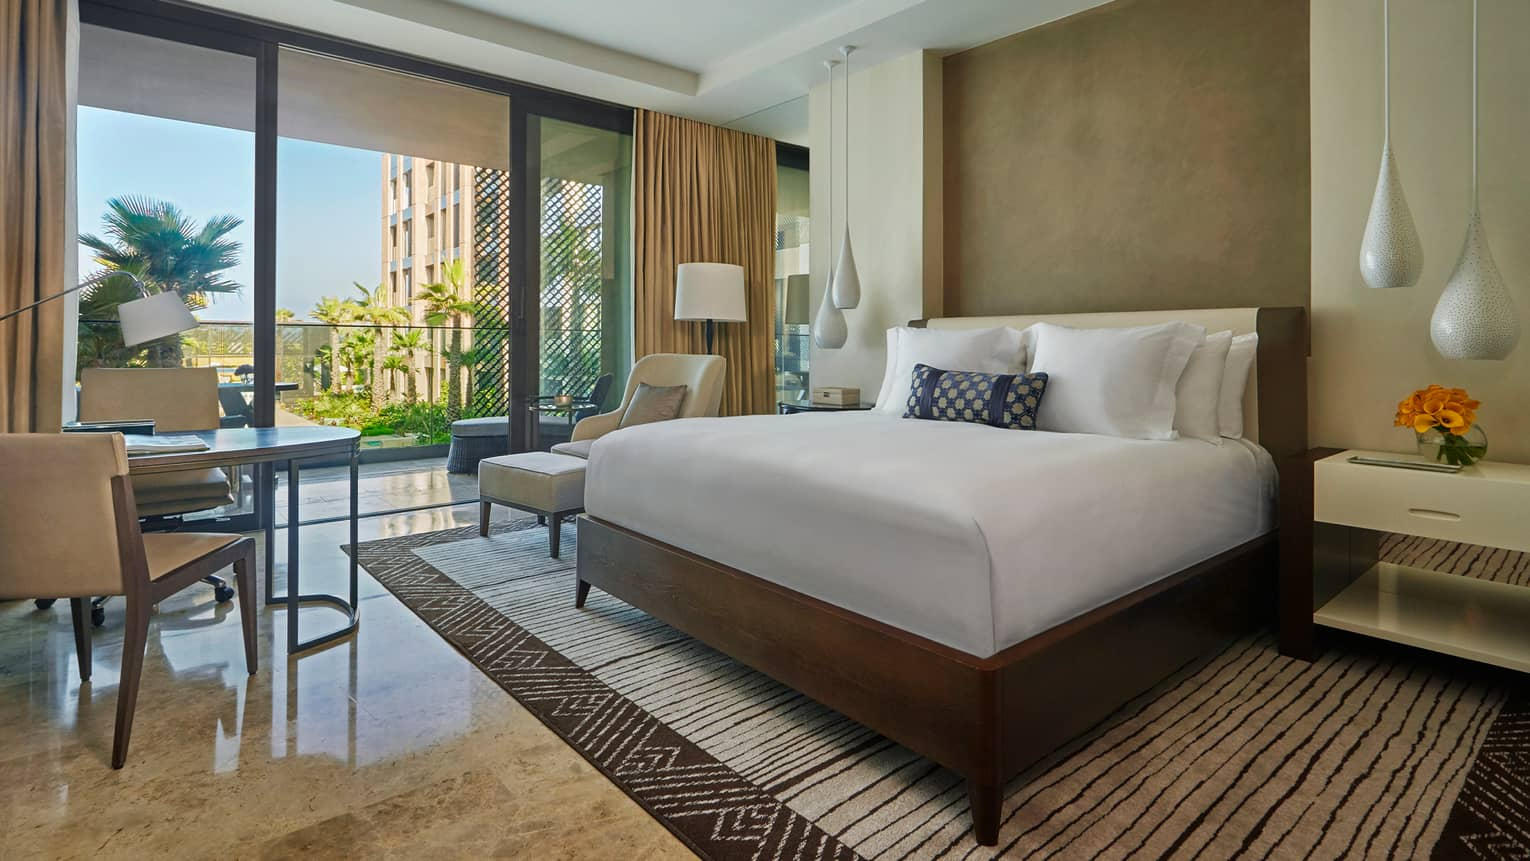 Deluxe Room hotel bed, white teardrop hanging lamps, tables by patio doors